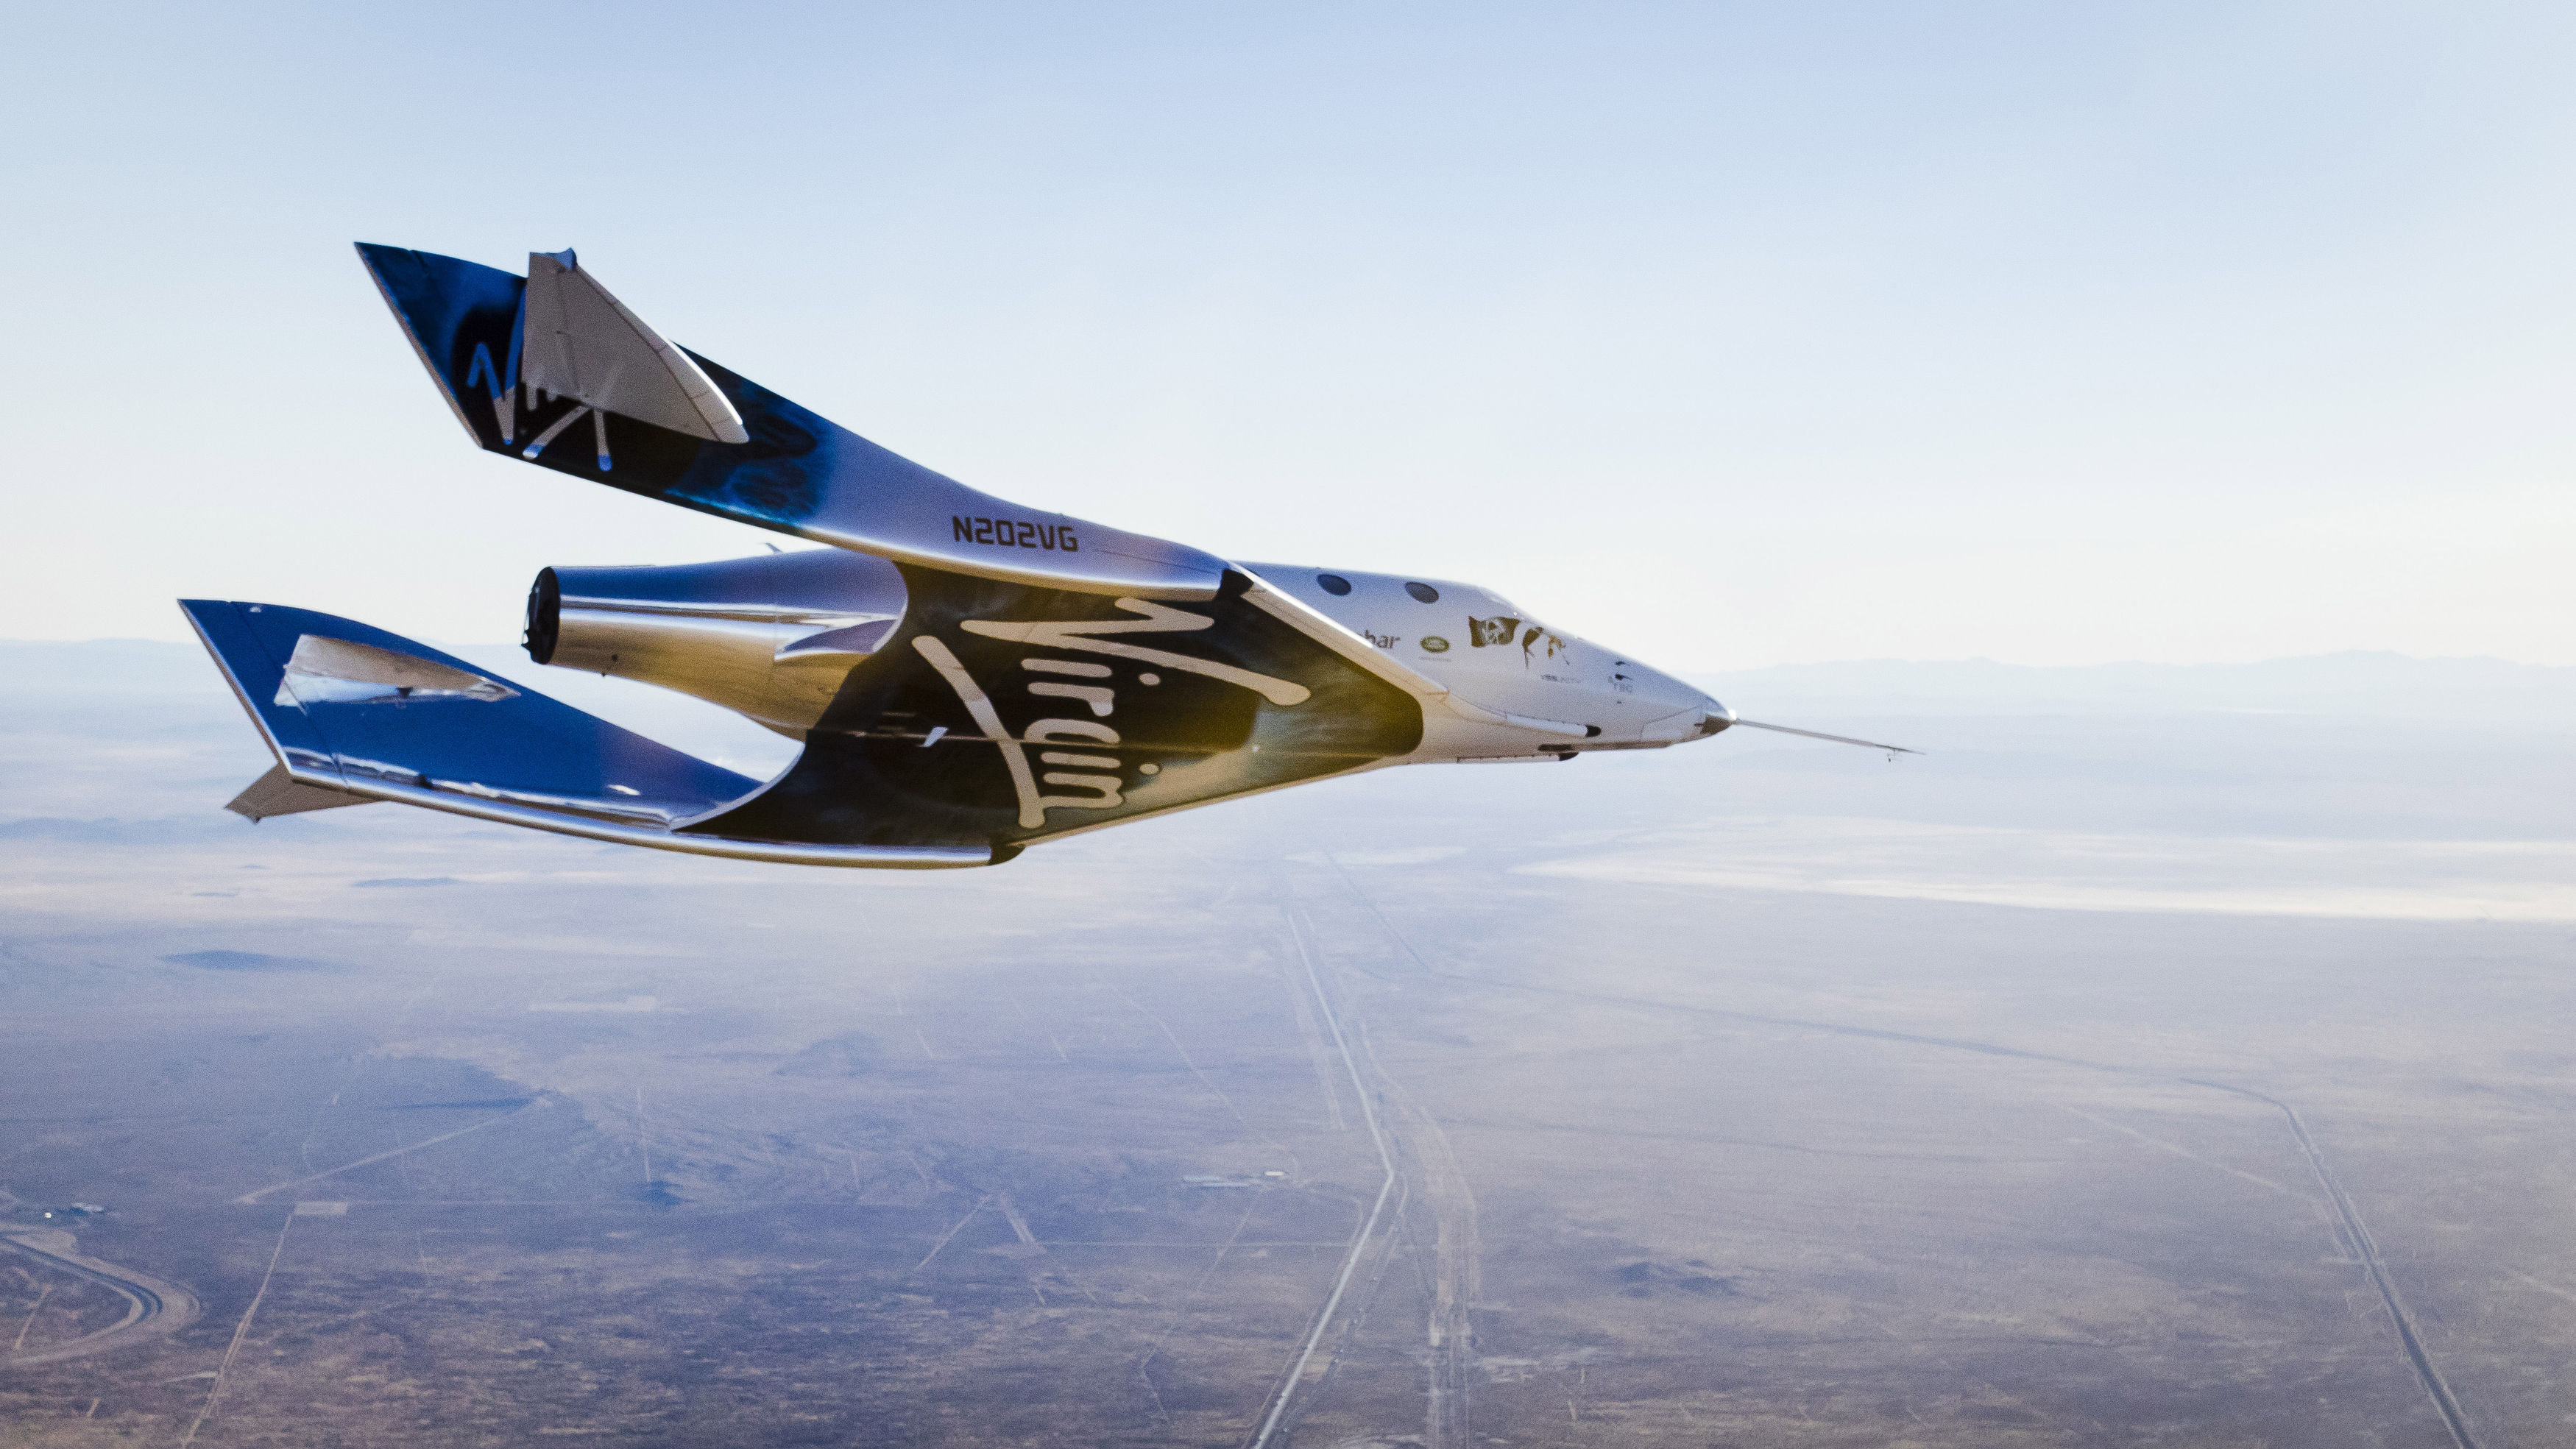 Virgin Spaceship Unity (VSS Unity), undergoing final checks in preparation for a test flight from Mojave, California, to the edge of space.